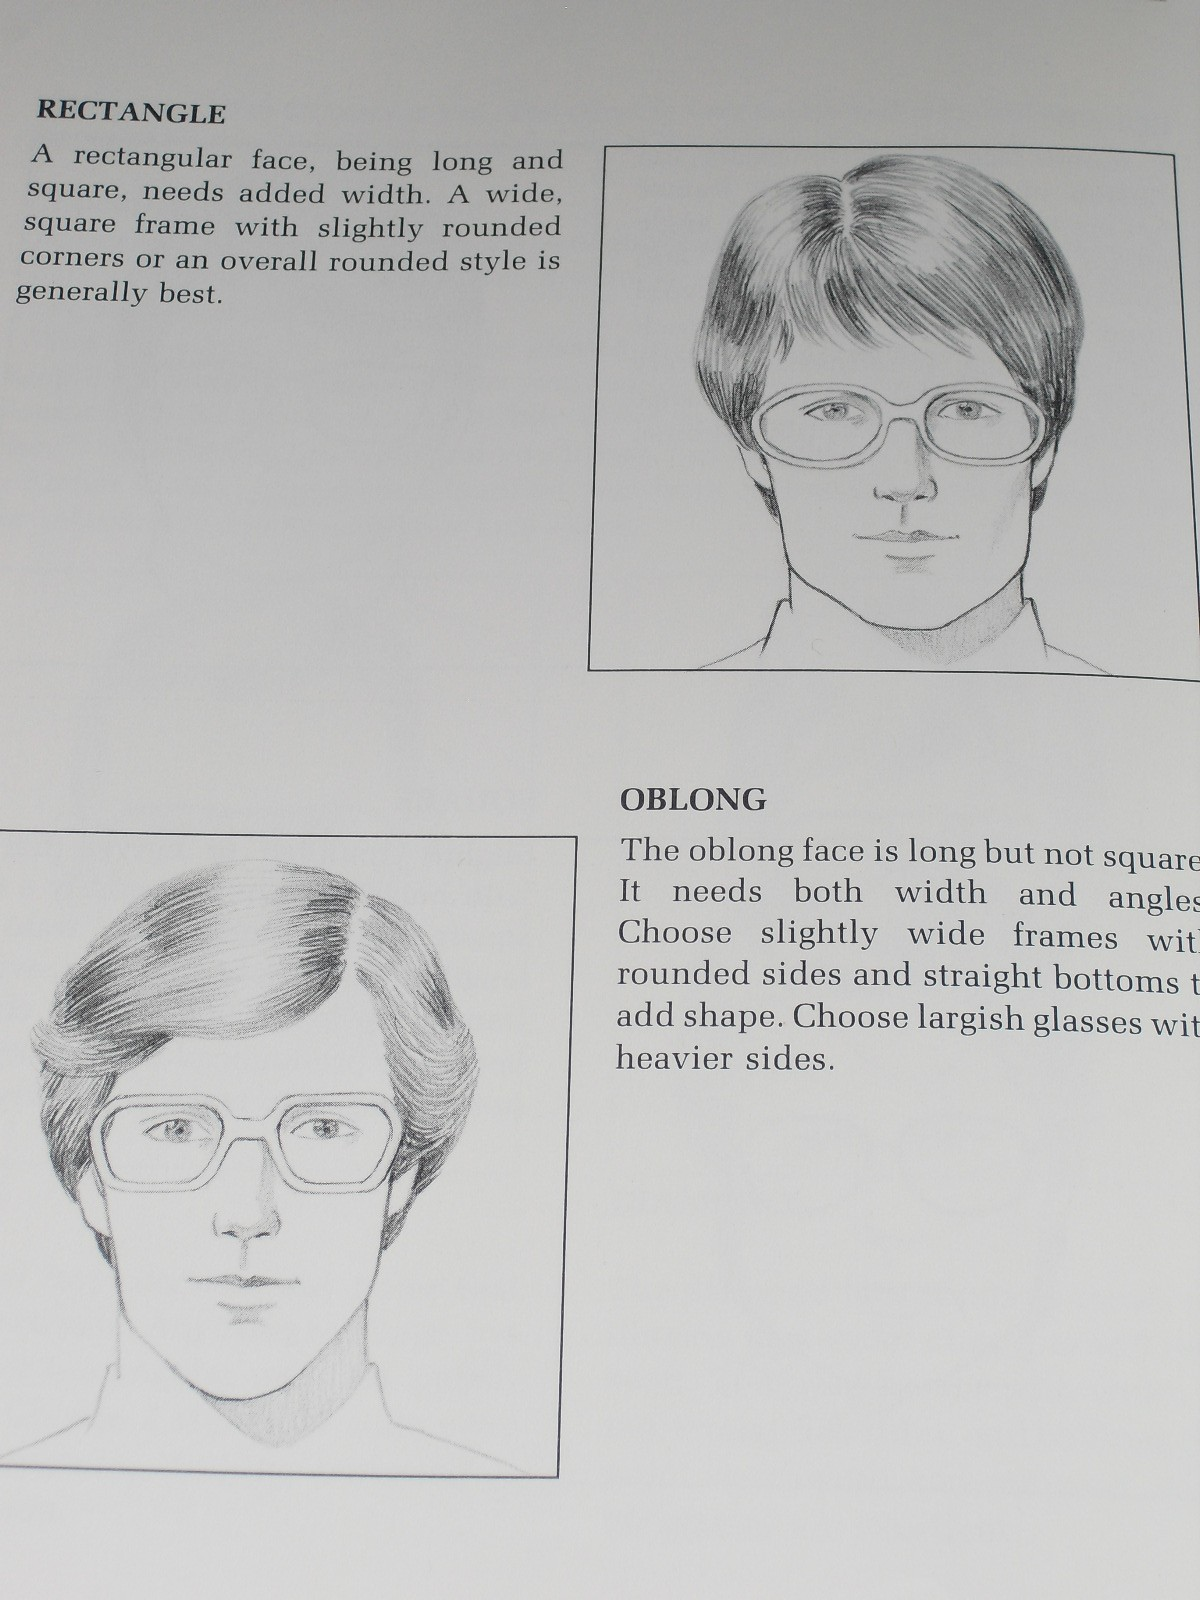 Pictures of 2 men wearing glasses